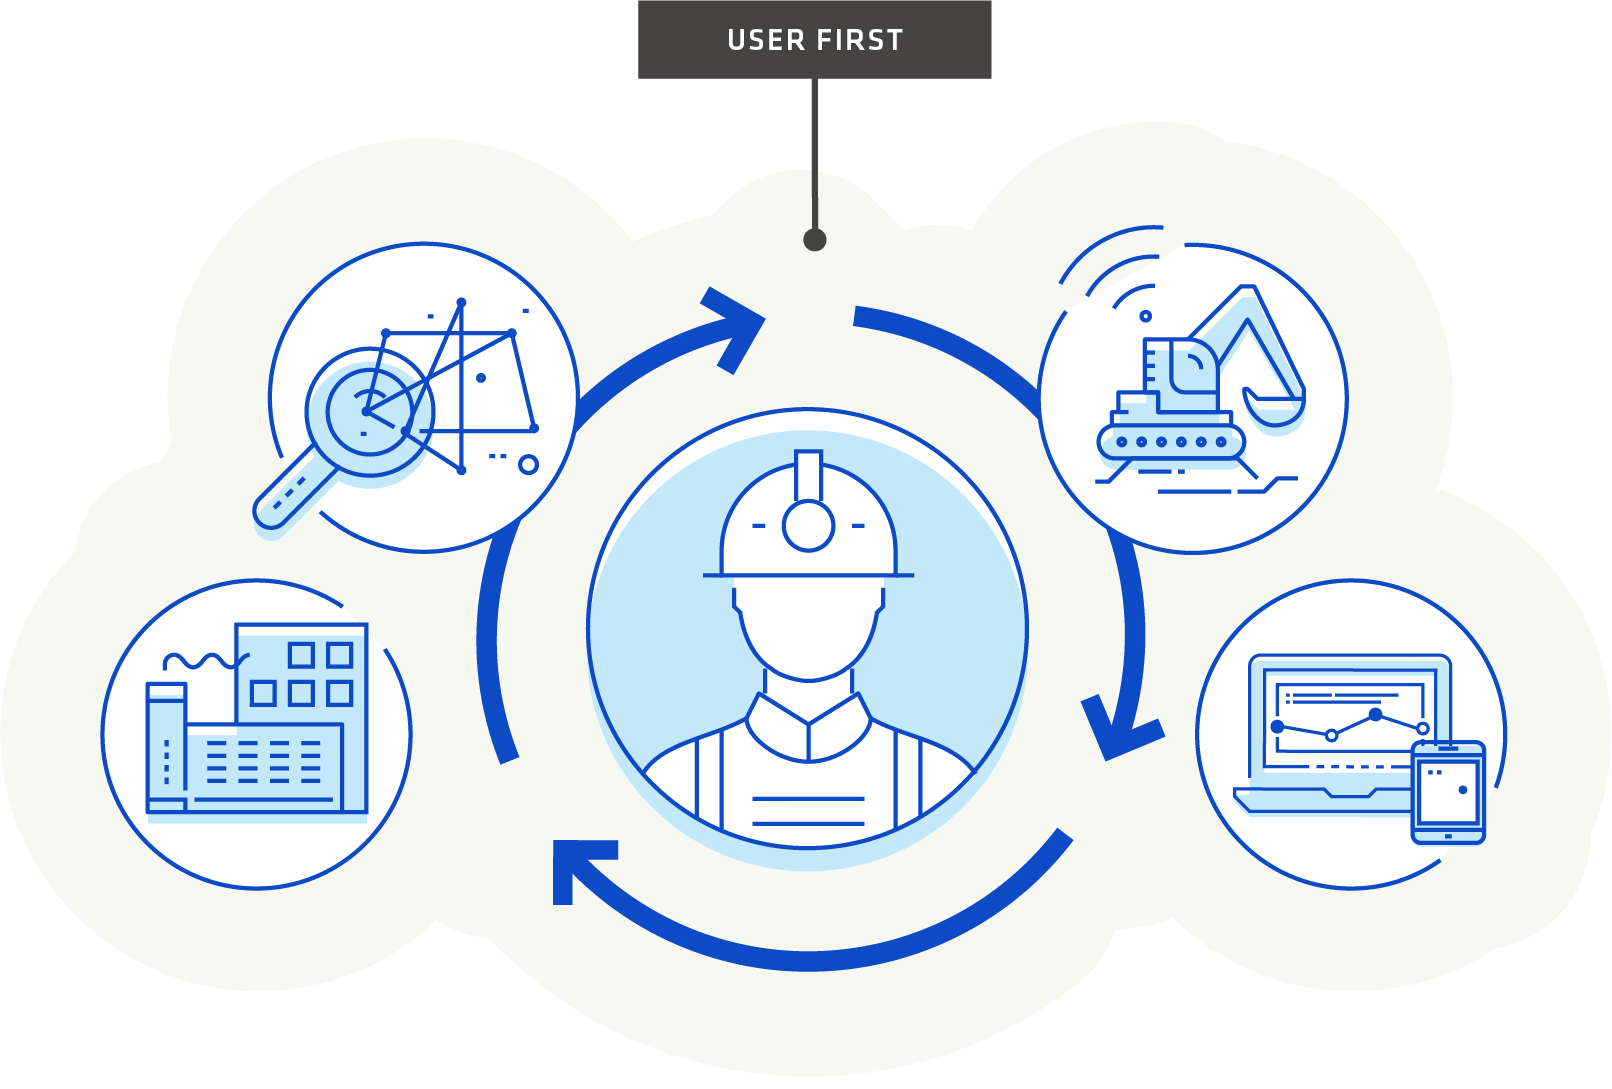 User first, mobile, industrial connected worker graphic